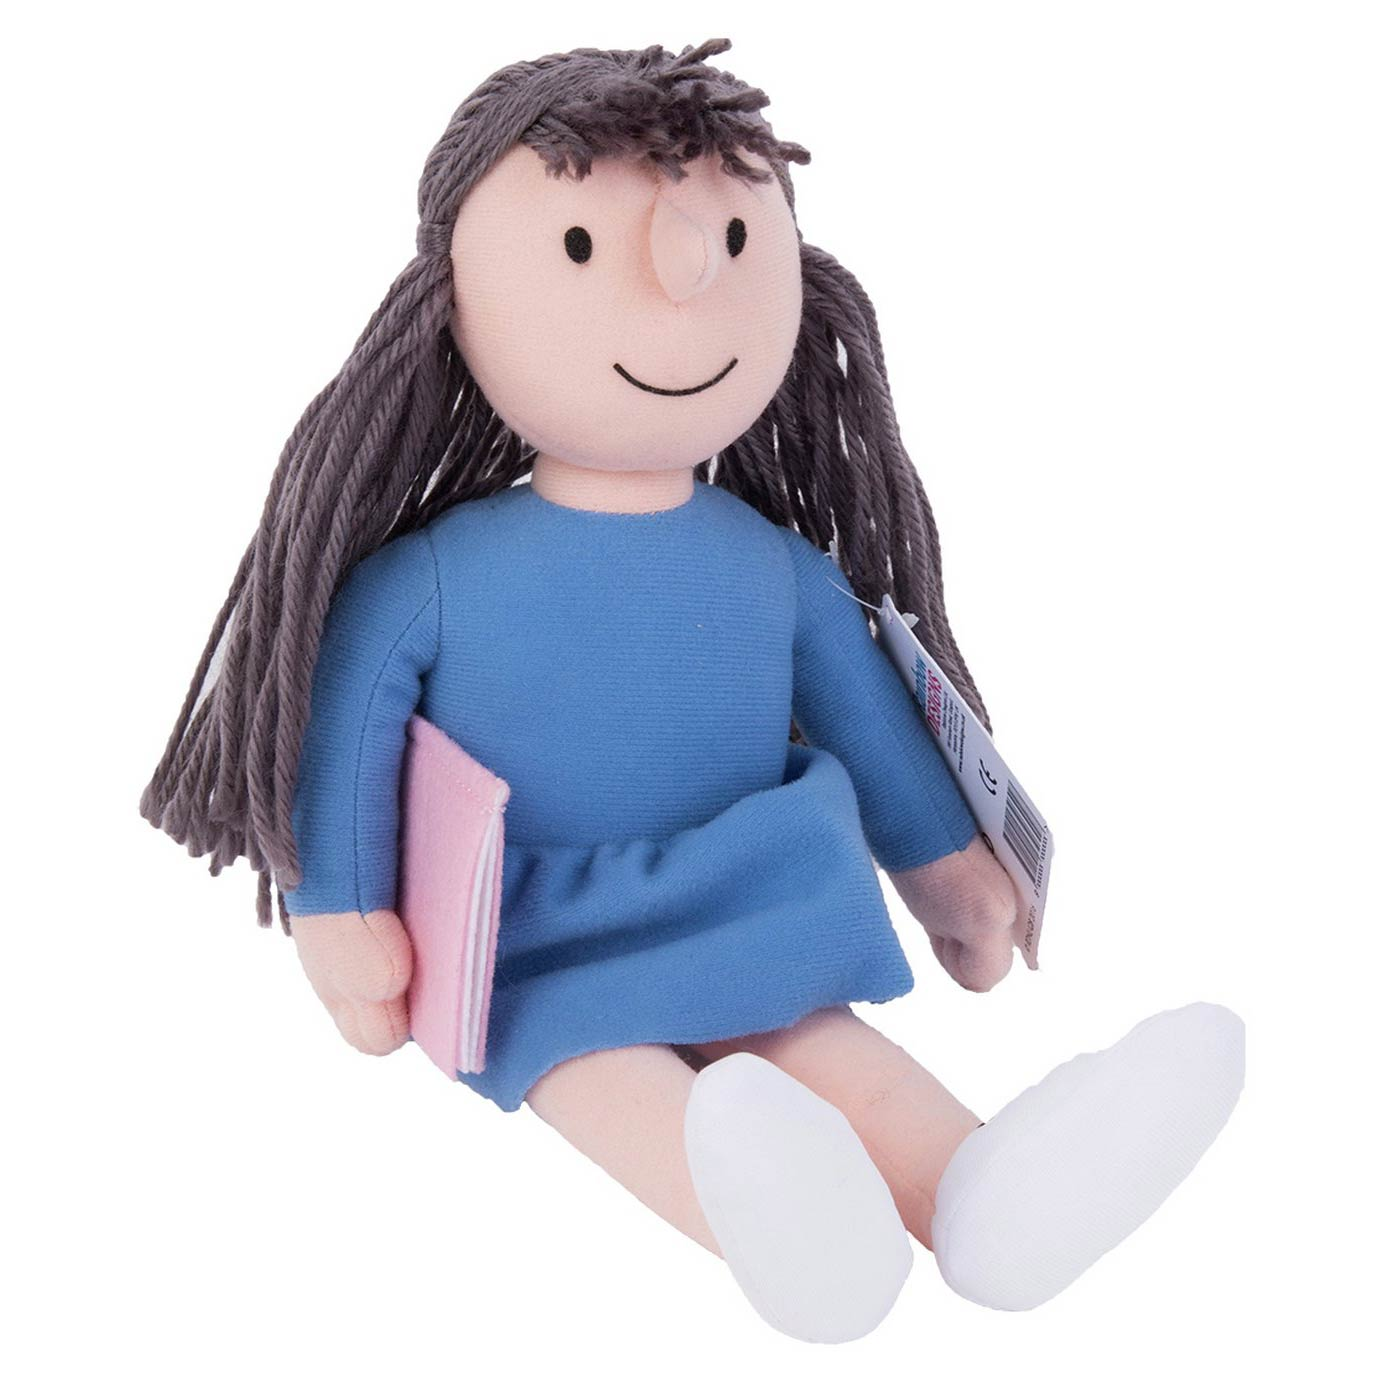 Soft Toy / Doll - Roald Dahl - Mathilda-Game-Book Lover Gifts